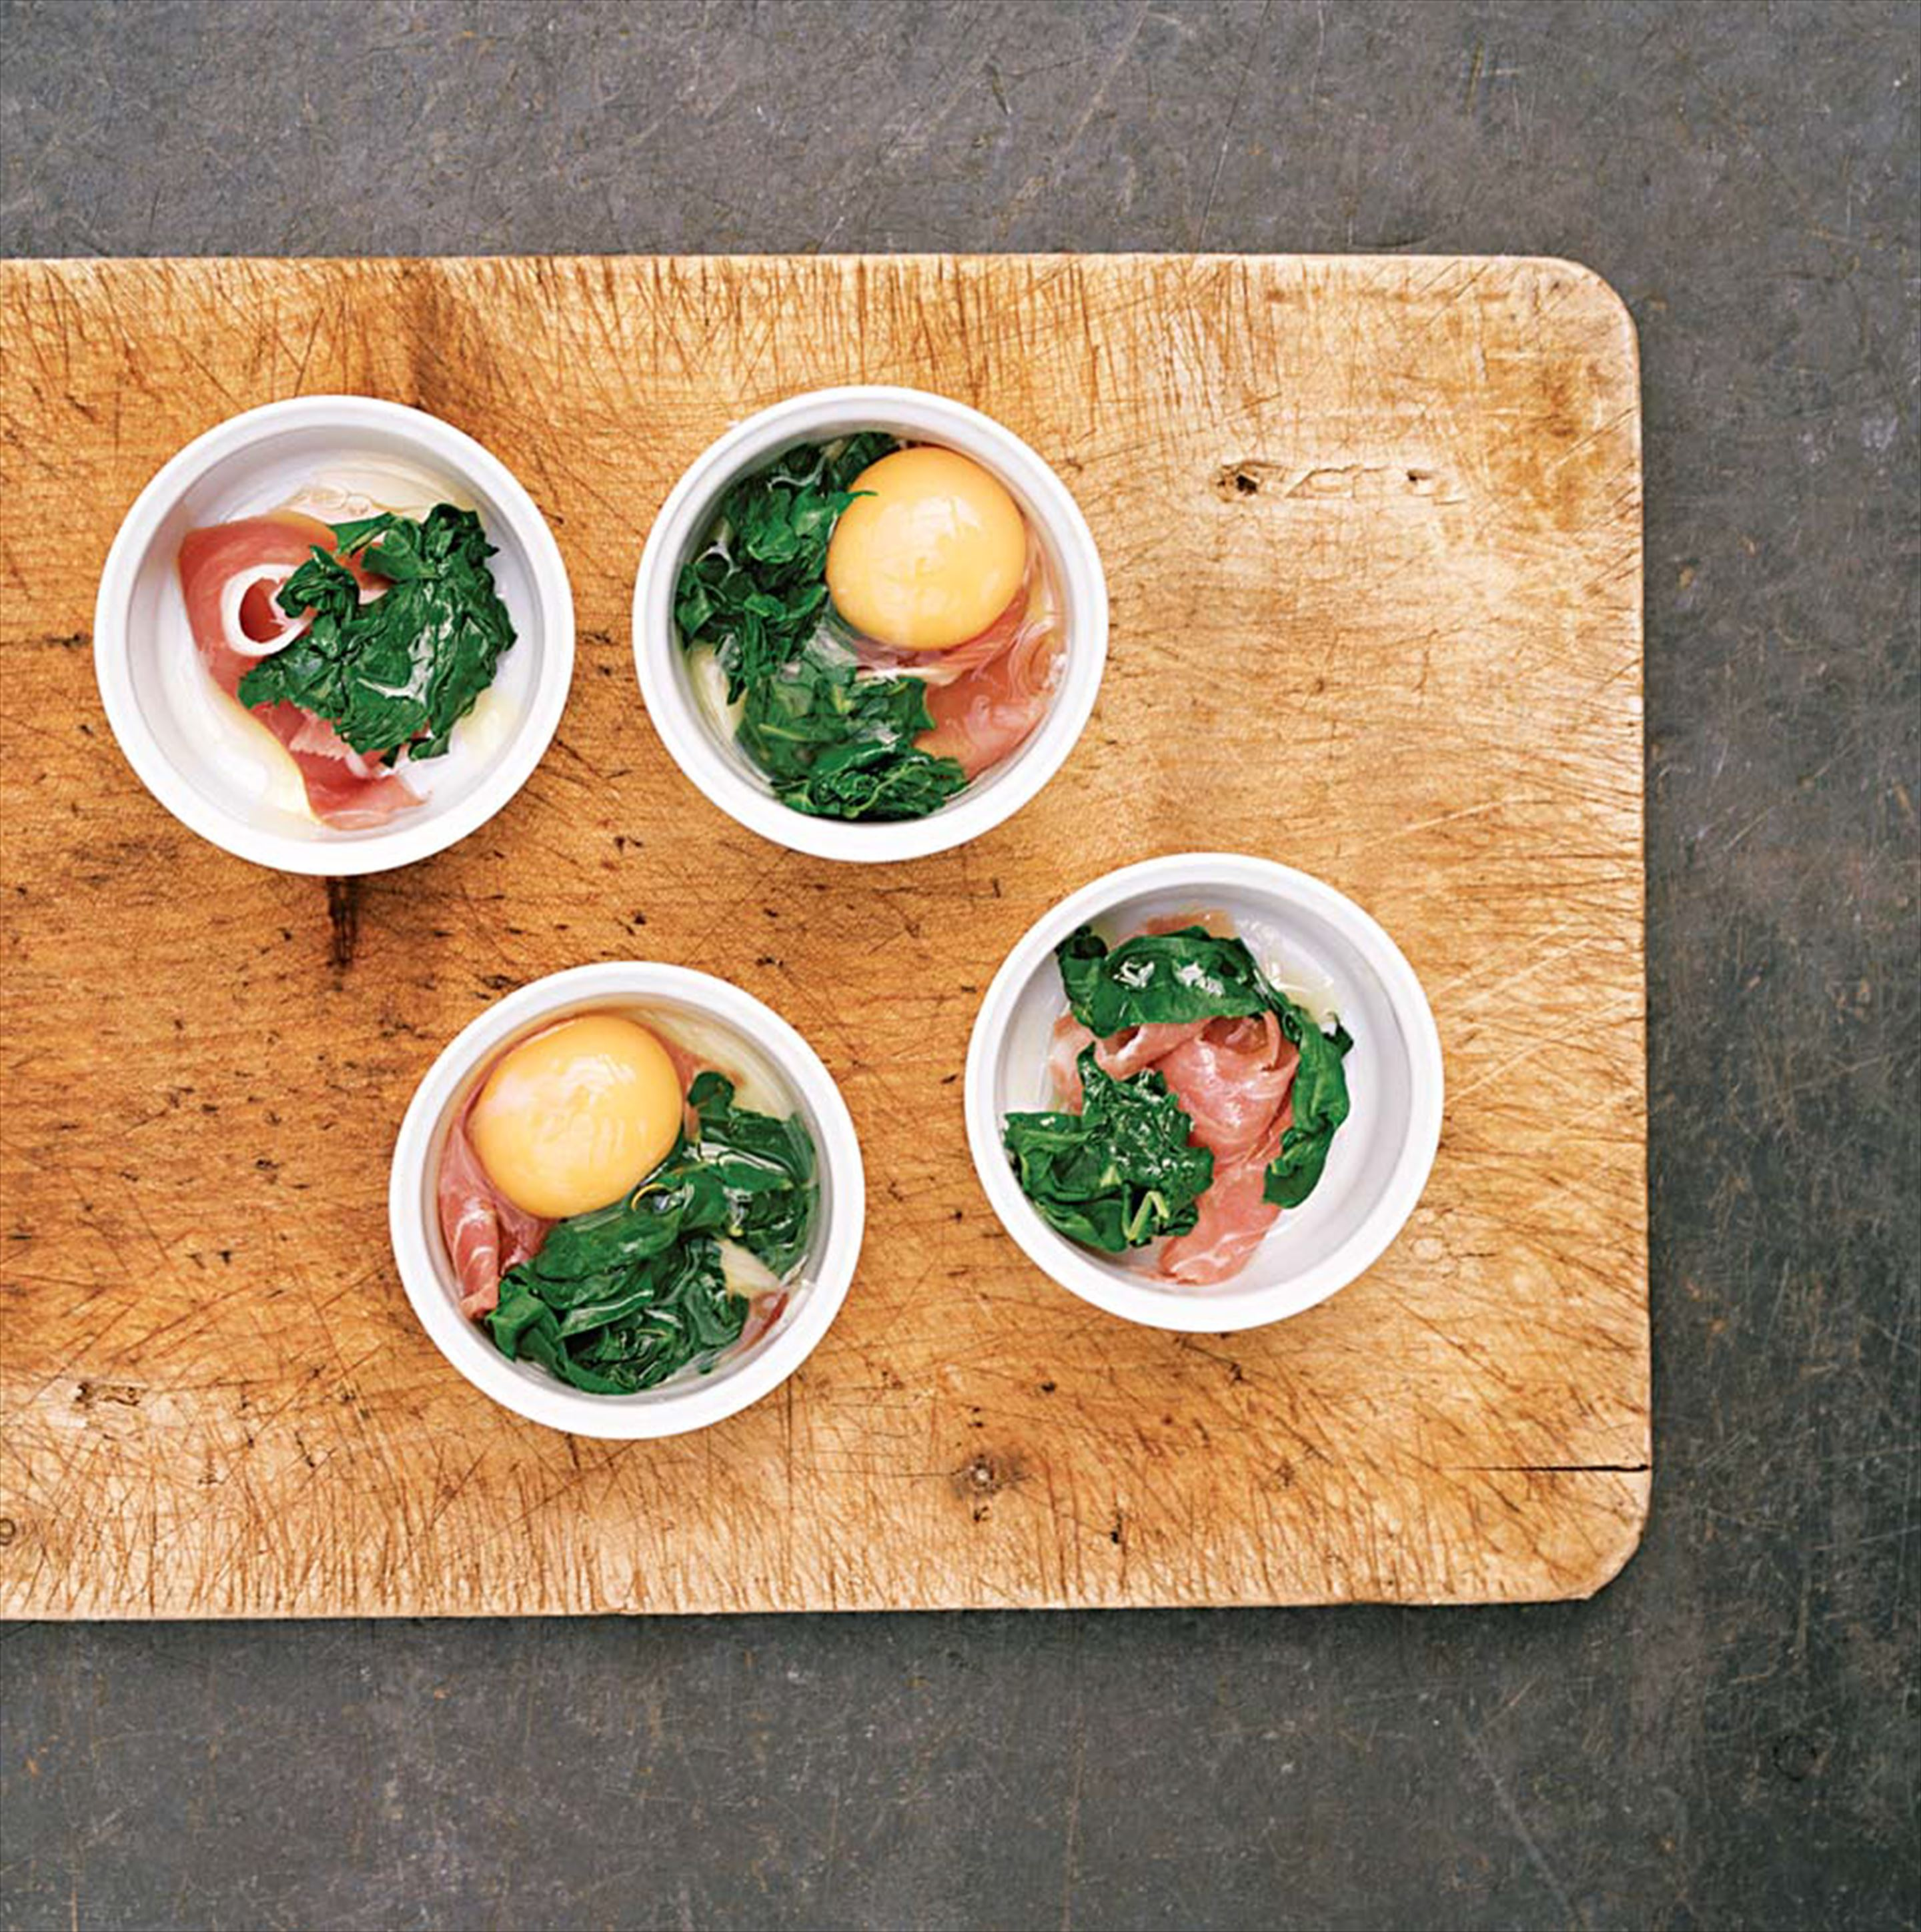 Oeufs en cocotte with spinach and parma ham